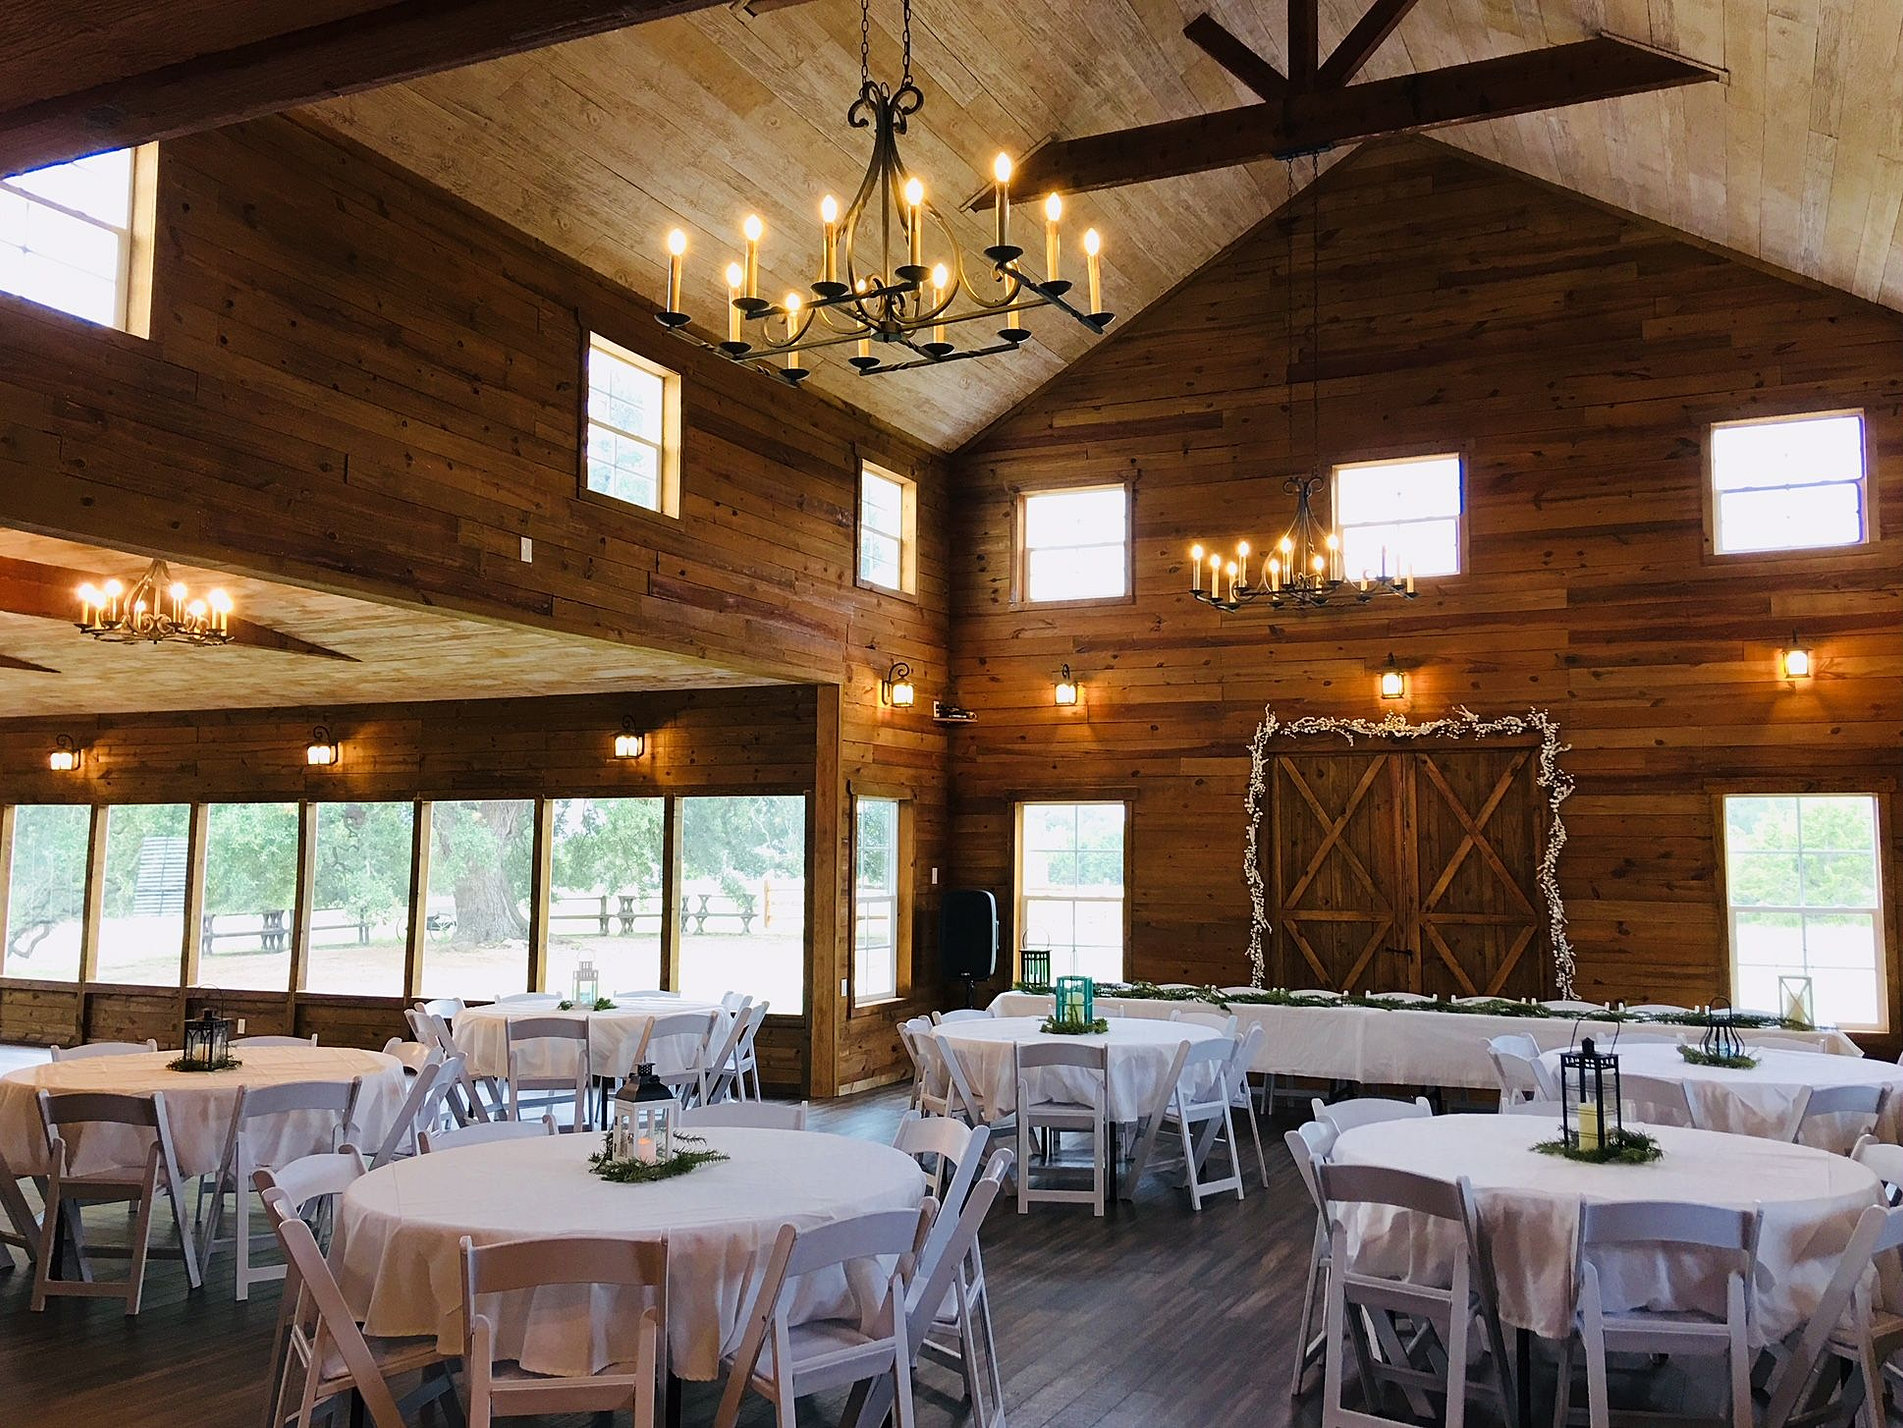 Hill Country Barn Wedding Venue